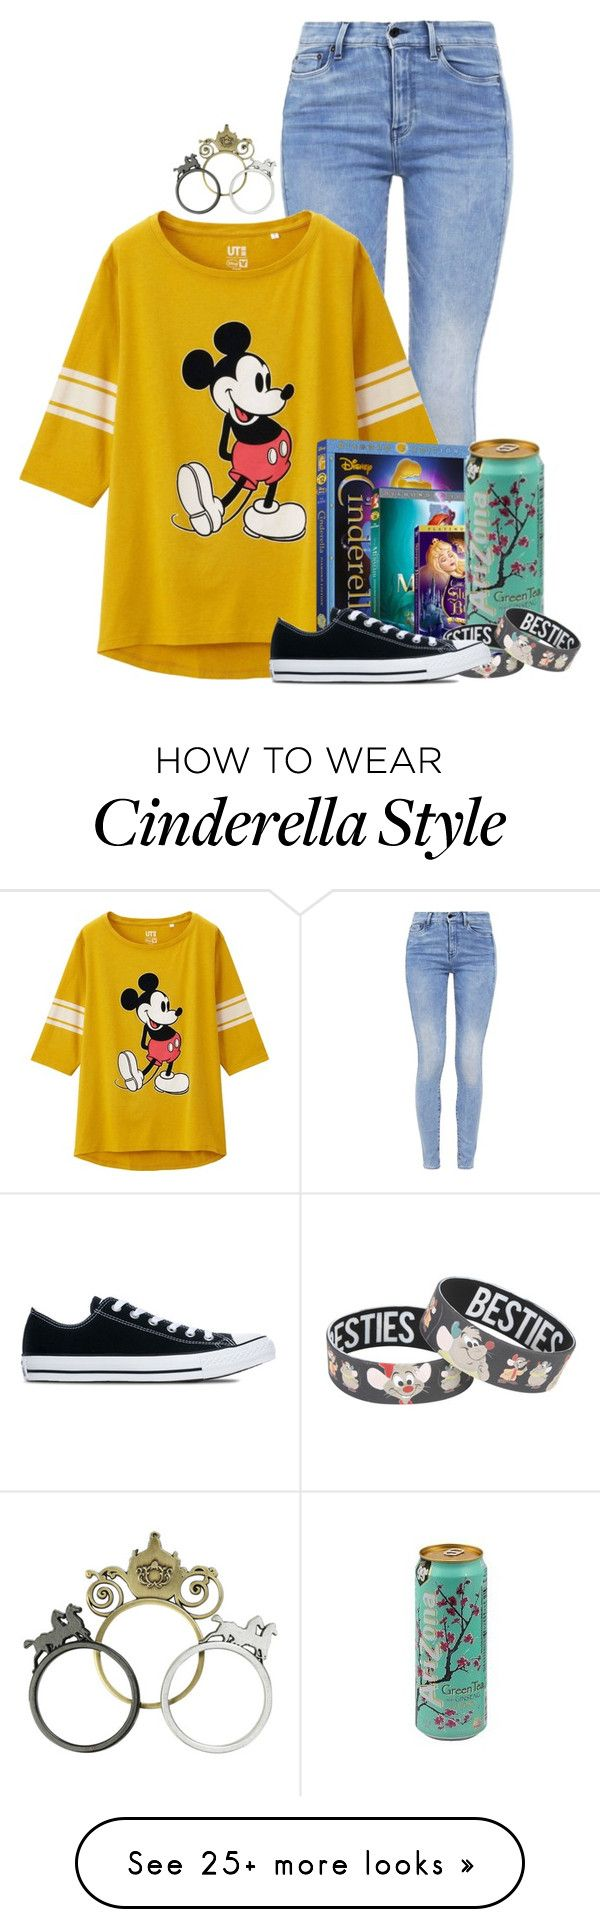 """Disney!"" by xxxmakeawish on Polyvore featuring G-Star, Uniqlo, Disney and Converse"